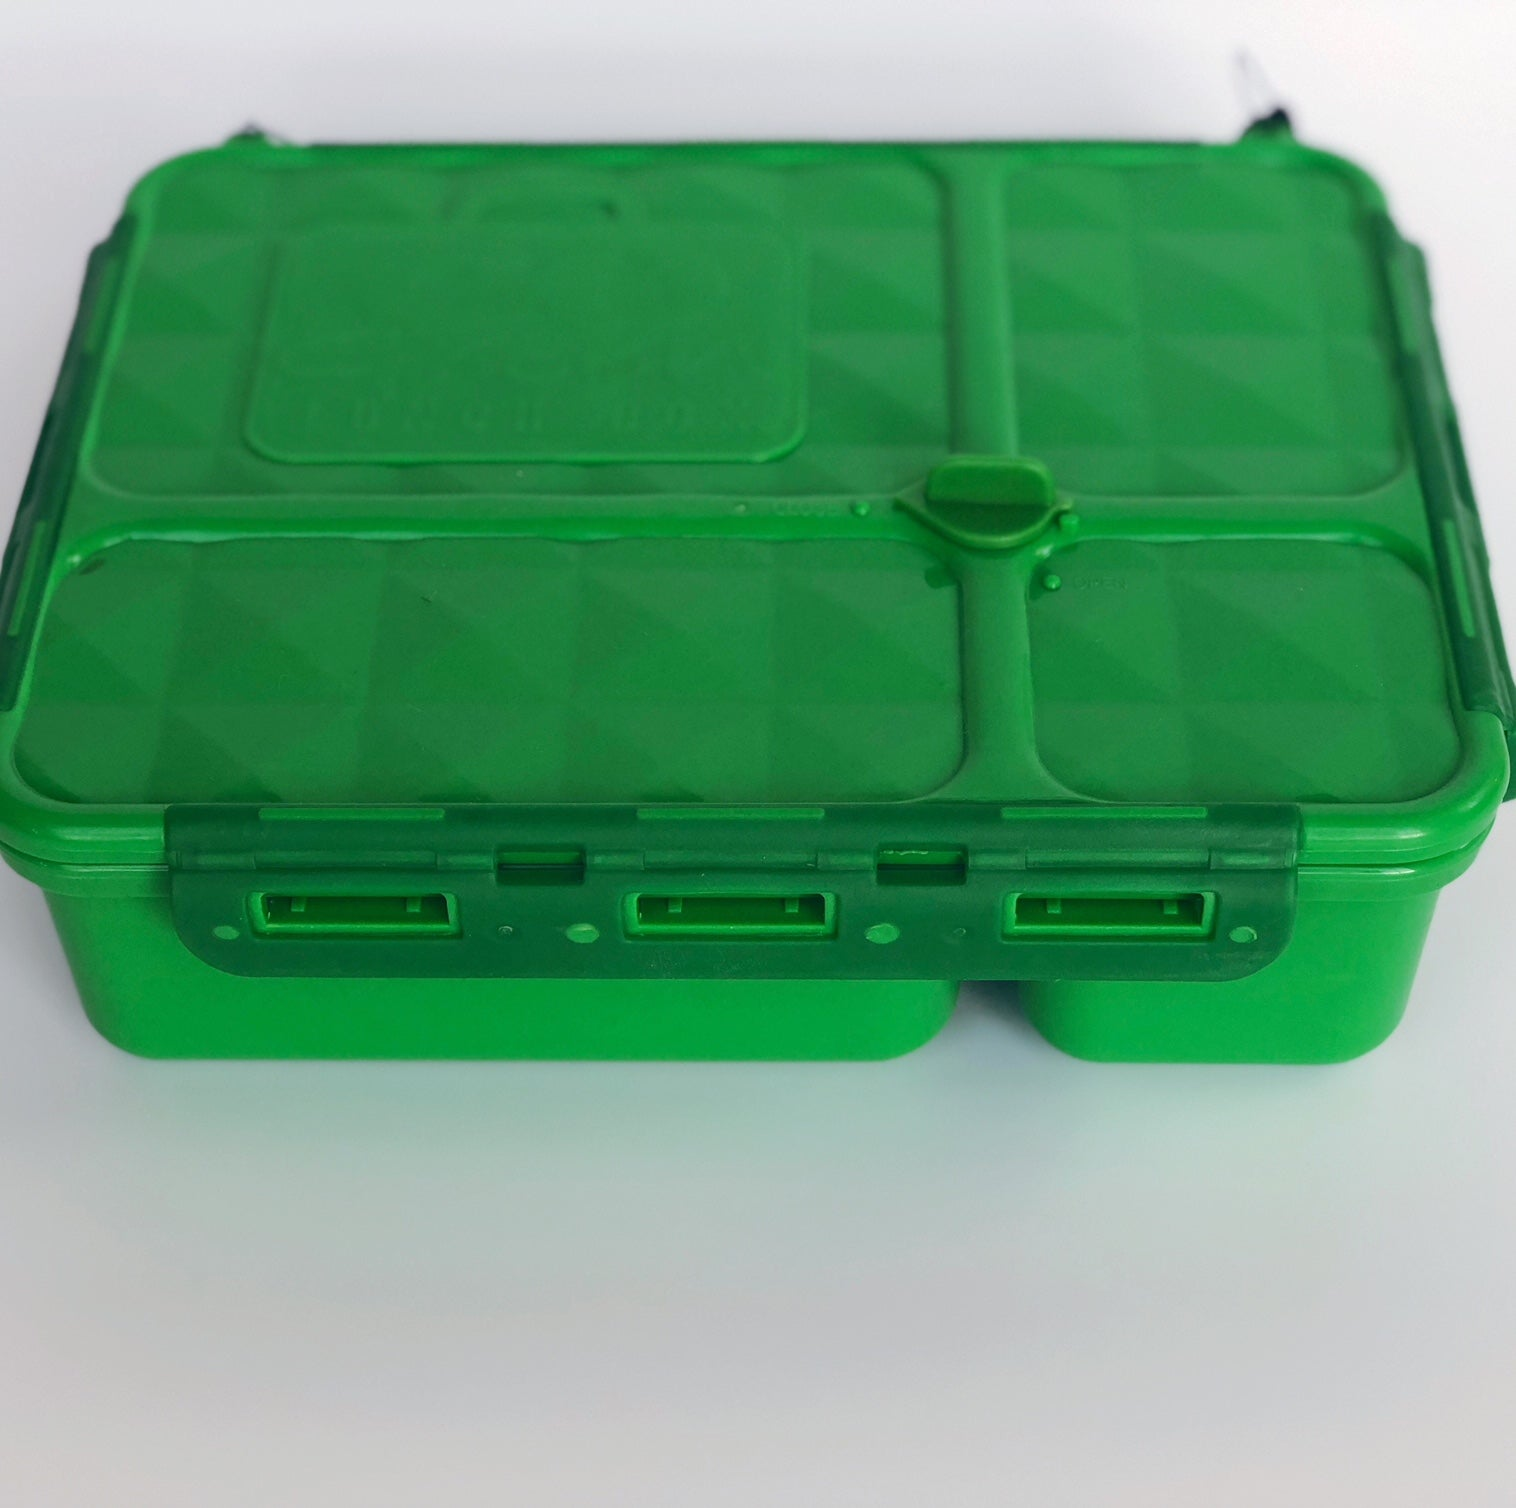 Go Green Medium Lunch Box - Green